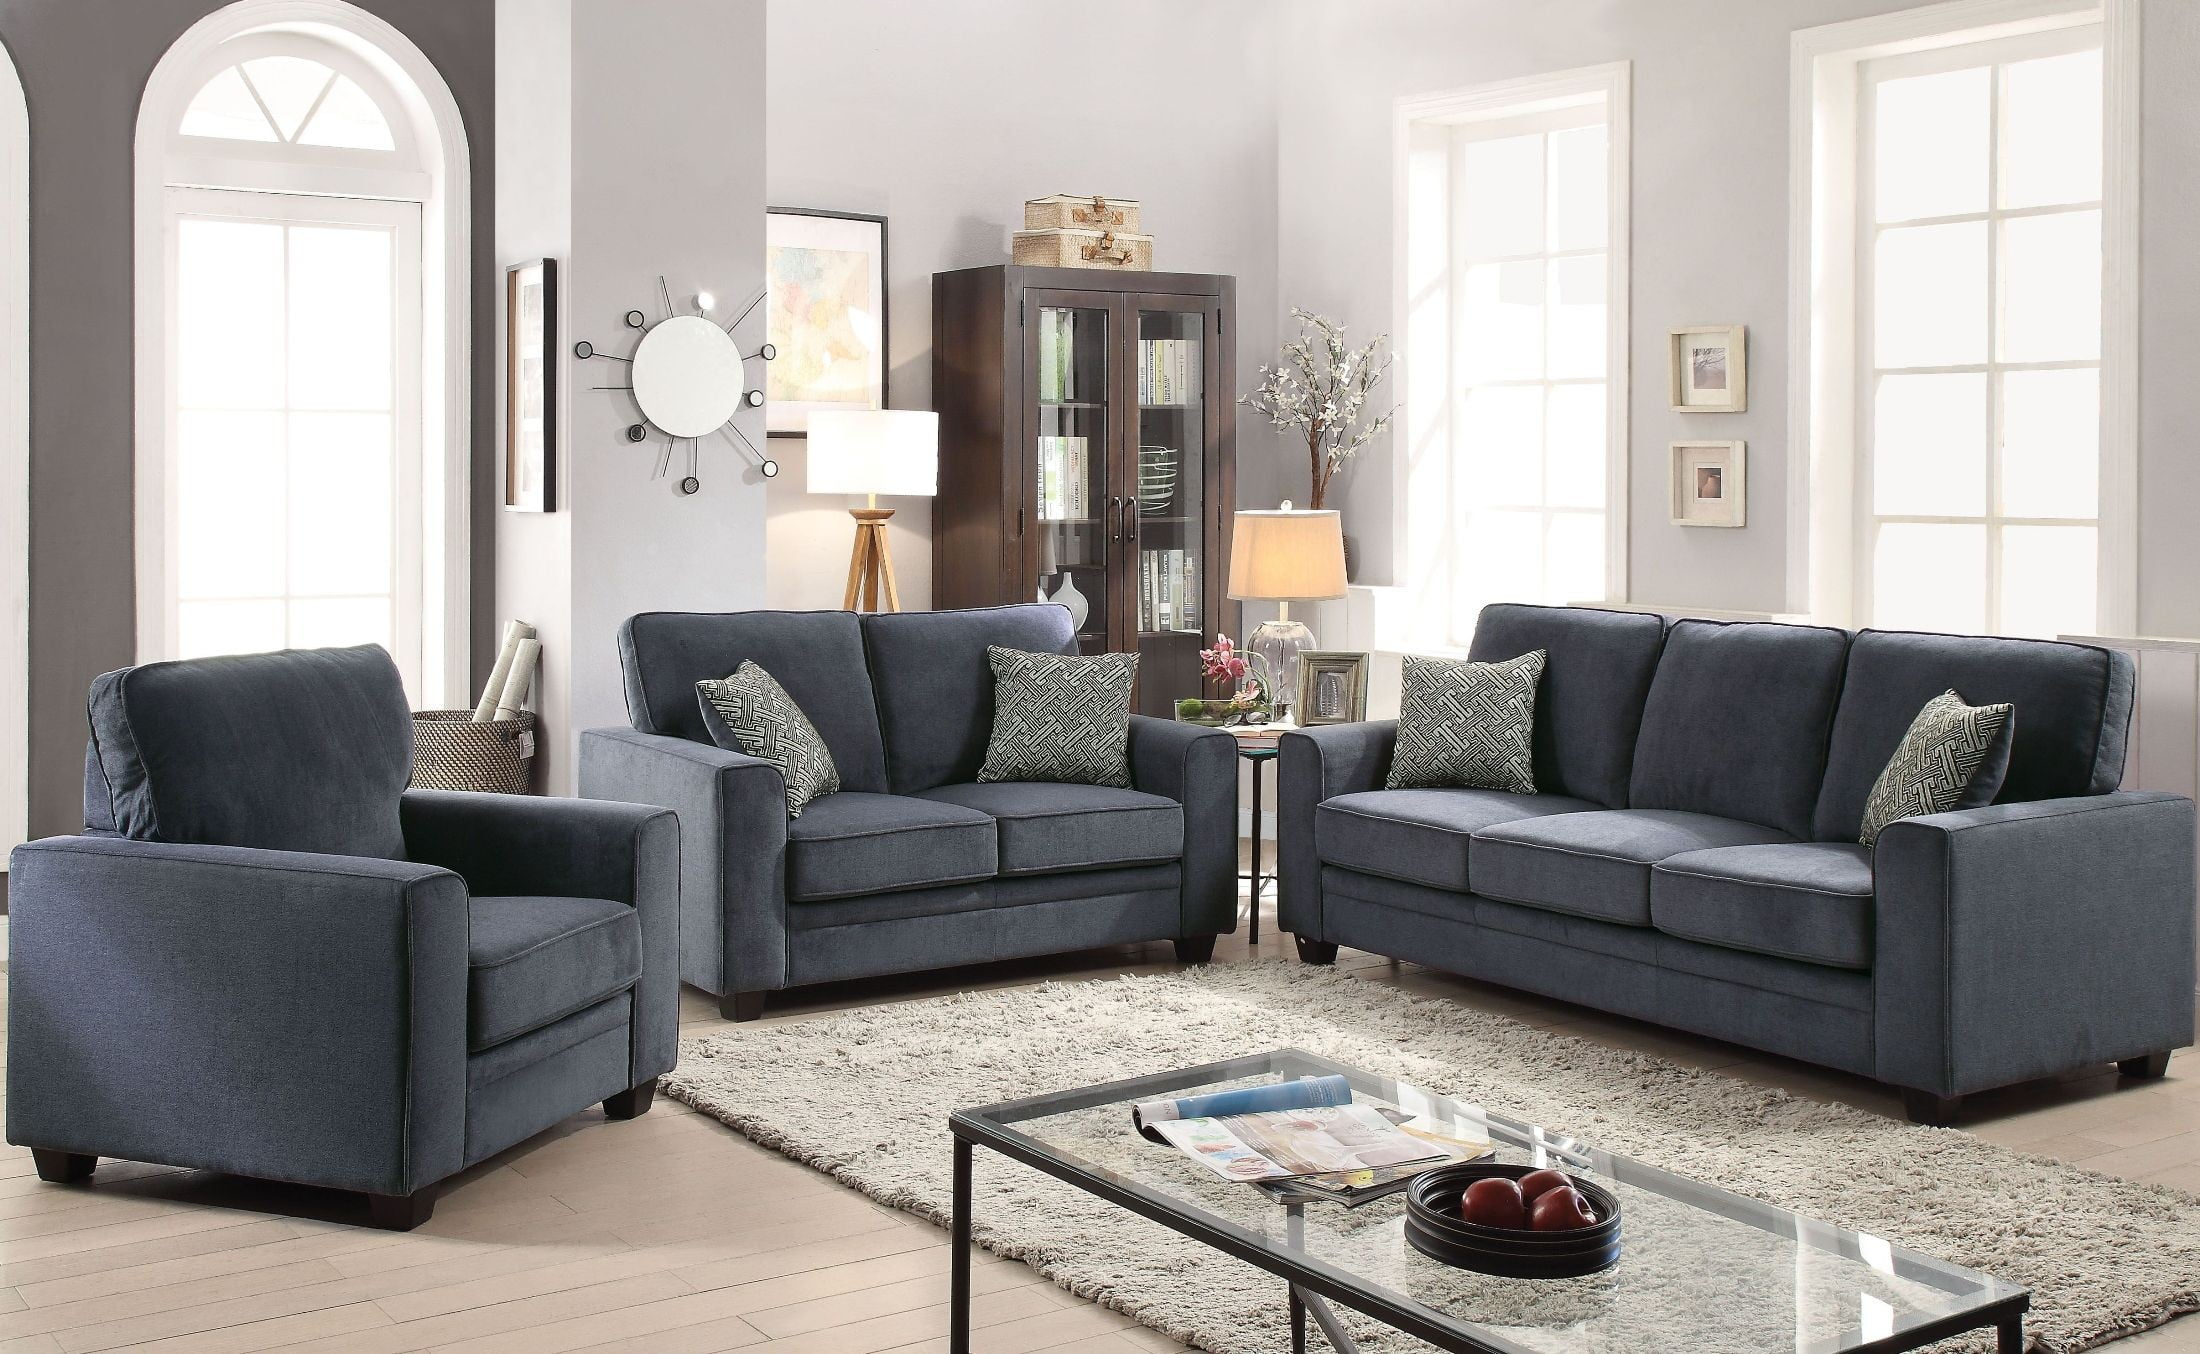 Catherine Blue Living Room Set from Acme